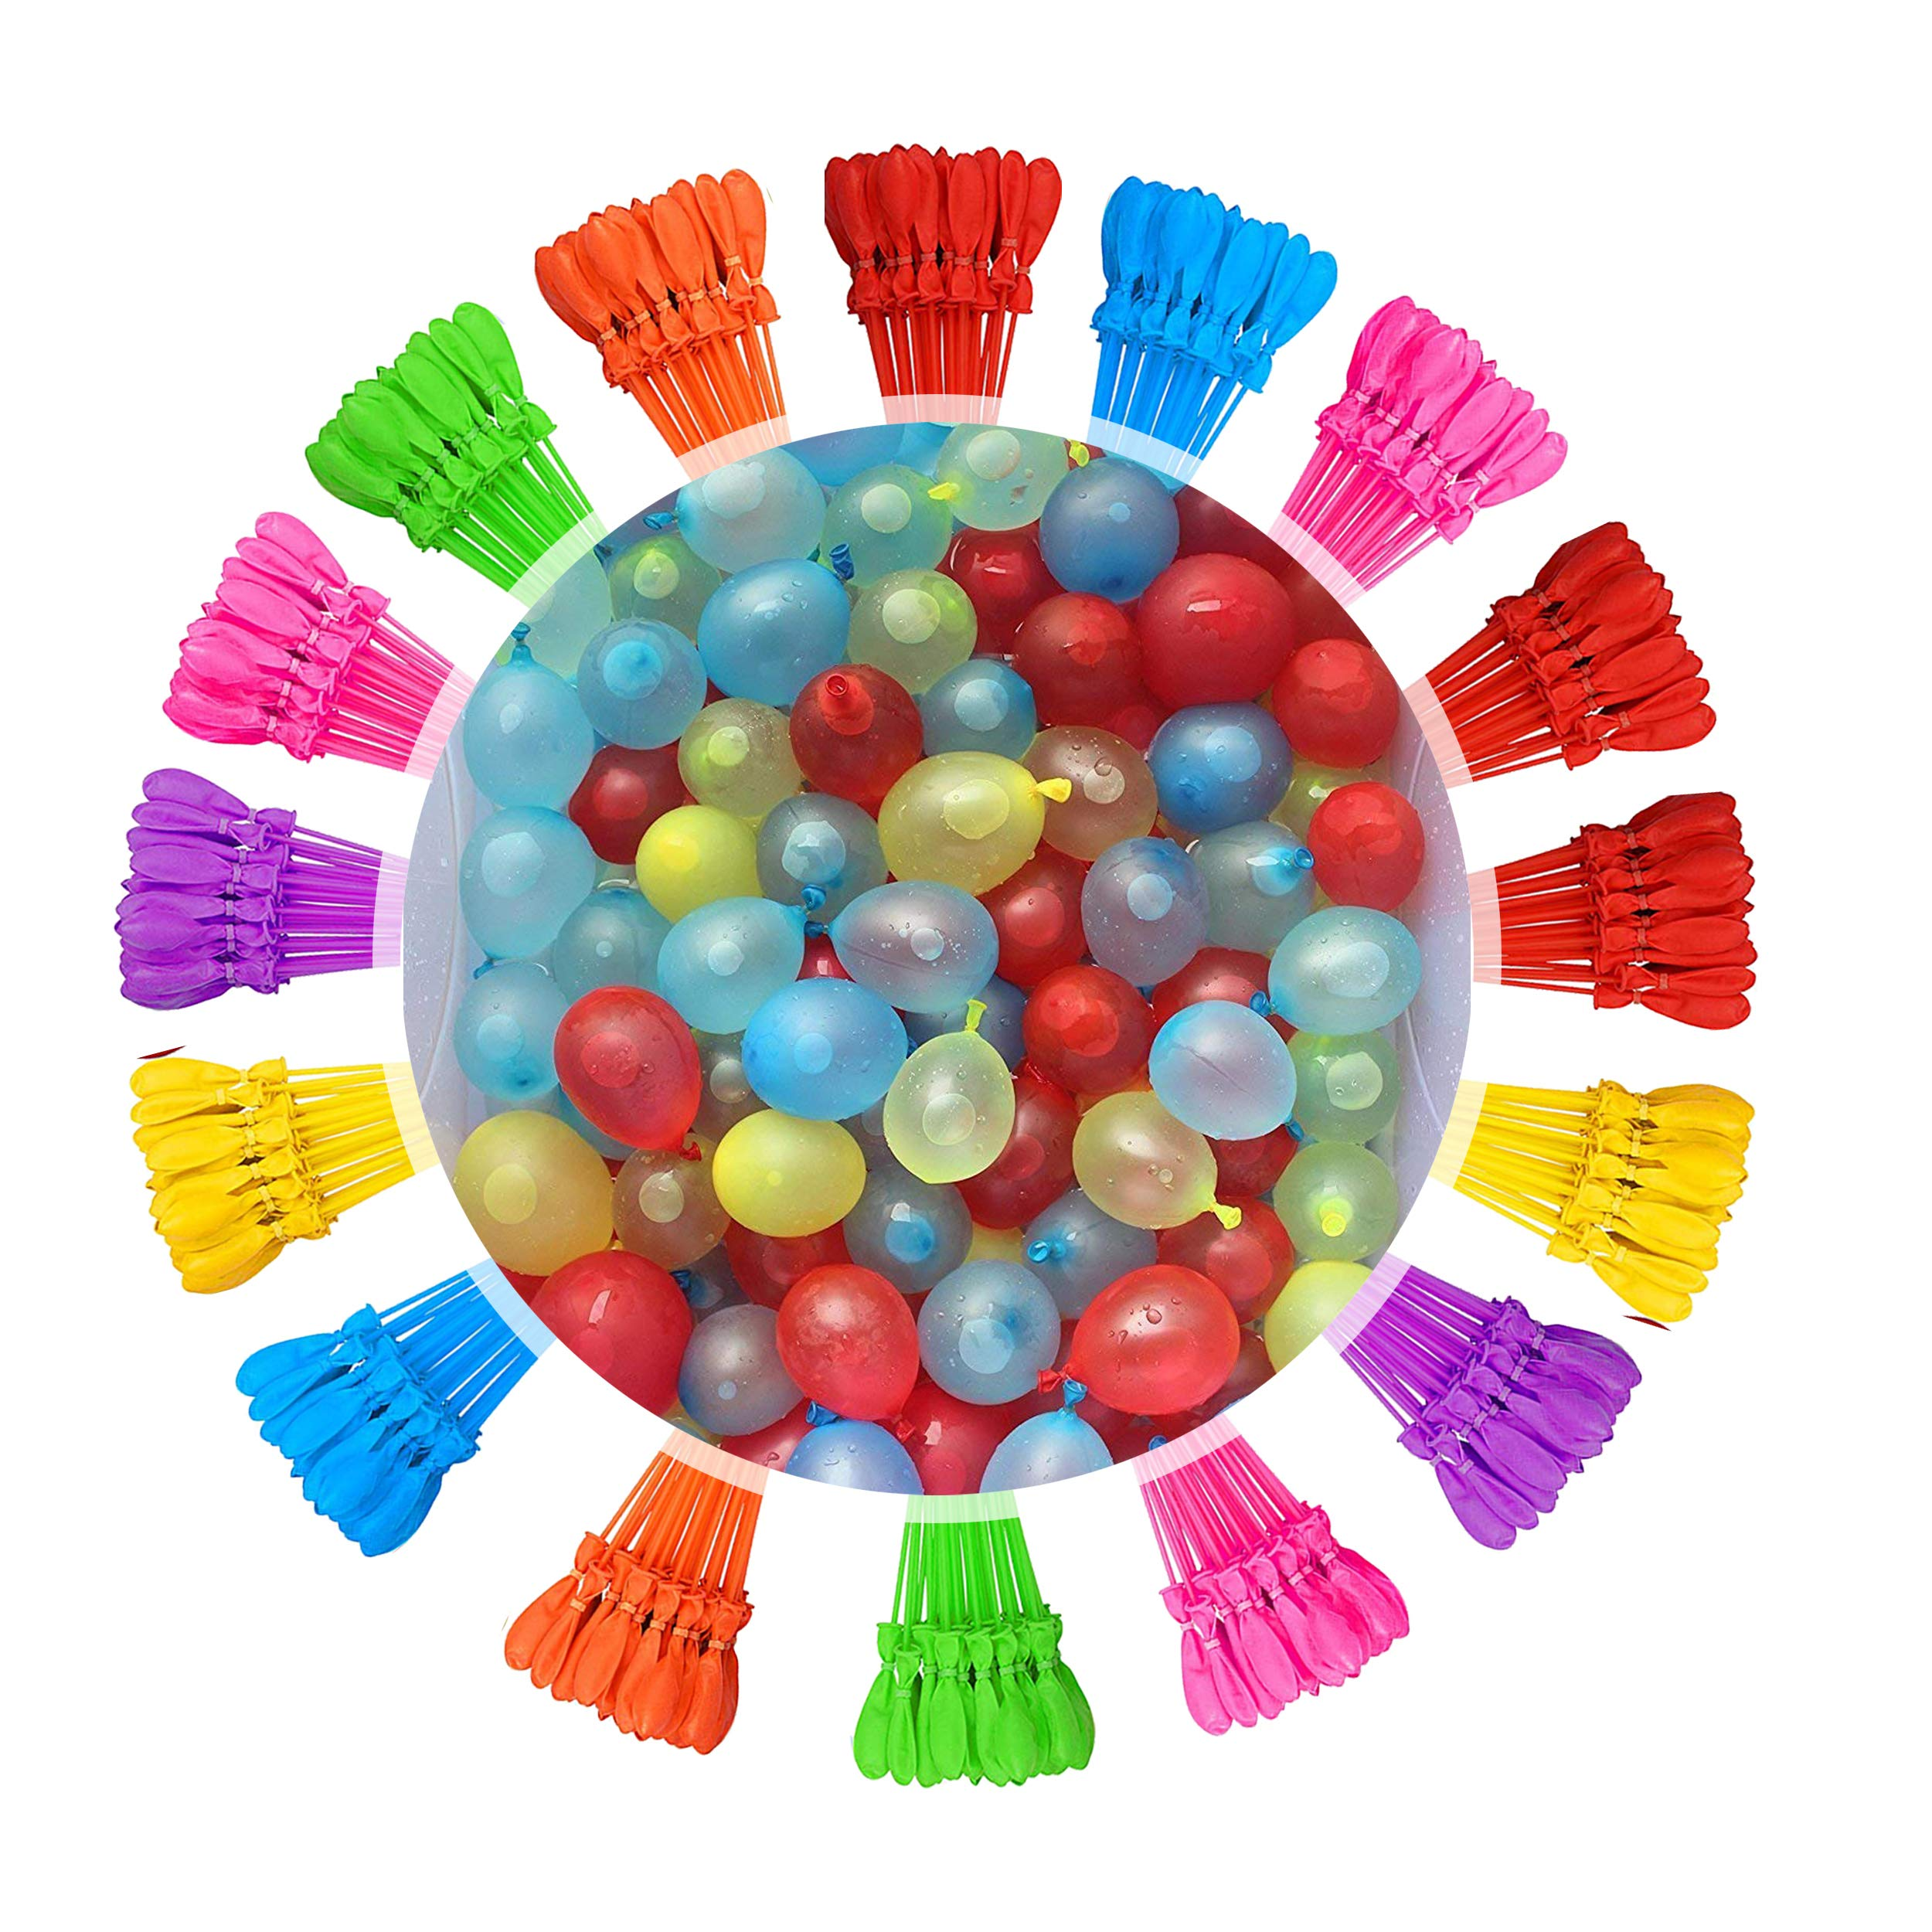 Tiny Balier Water Balloons 16 Bunch 596 Balloons Instant Fill Balloons Easy Quick Splash Fun Rapid-Filling Self-Sealing for Kids and Adults Party ... (Multicolored-1) by Tiny Balier